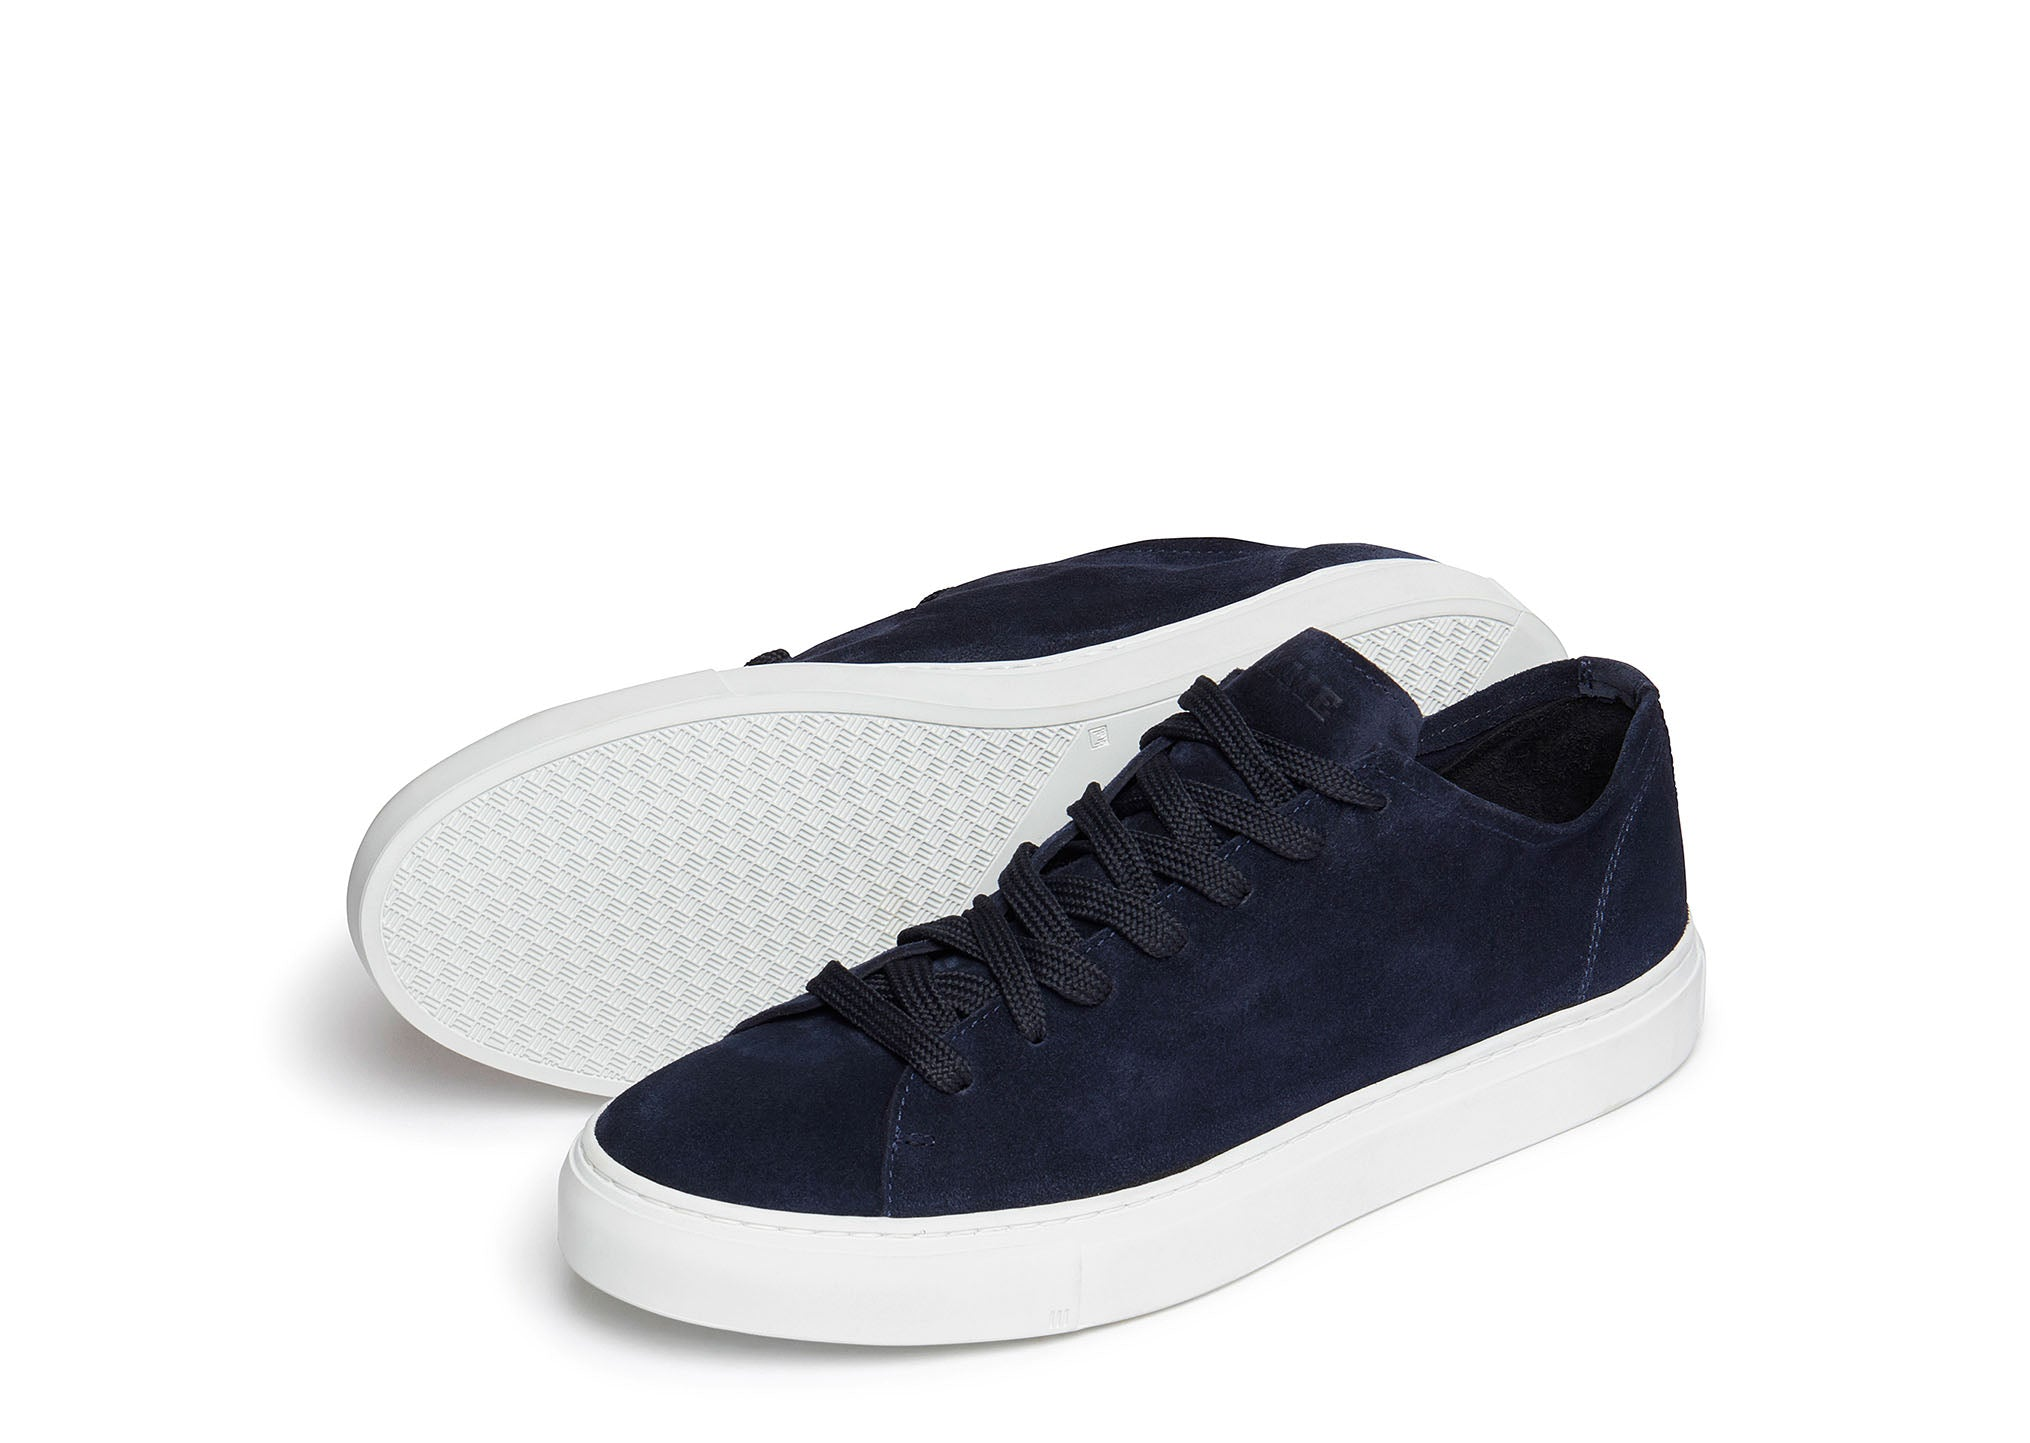 fa77fae6e72 Diemme Loria Low Sneakers in Navy Suede   albam Clothing